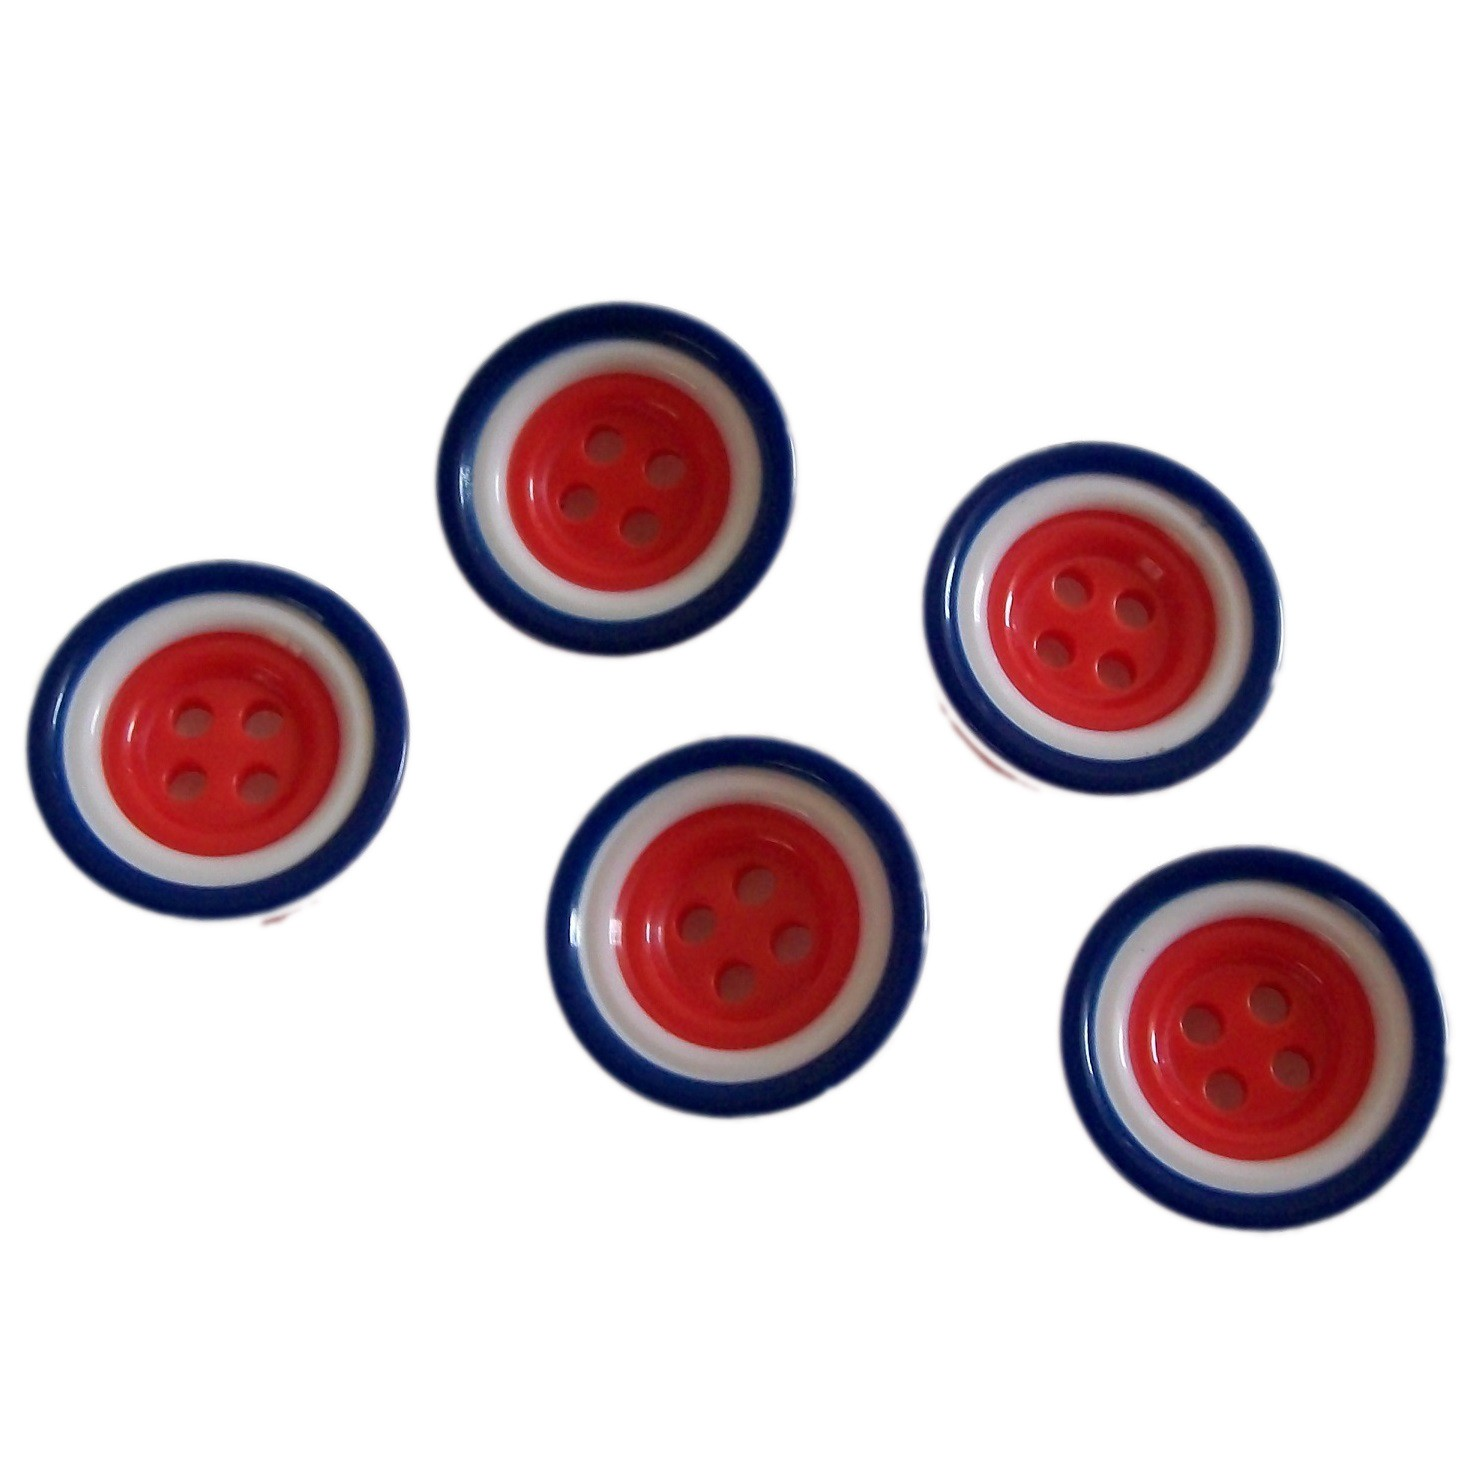 Mod Target Style Round Plastic Buttons 20mm Pack of 5